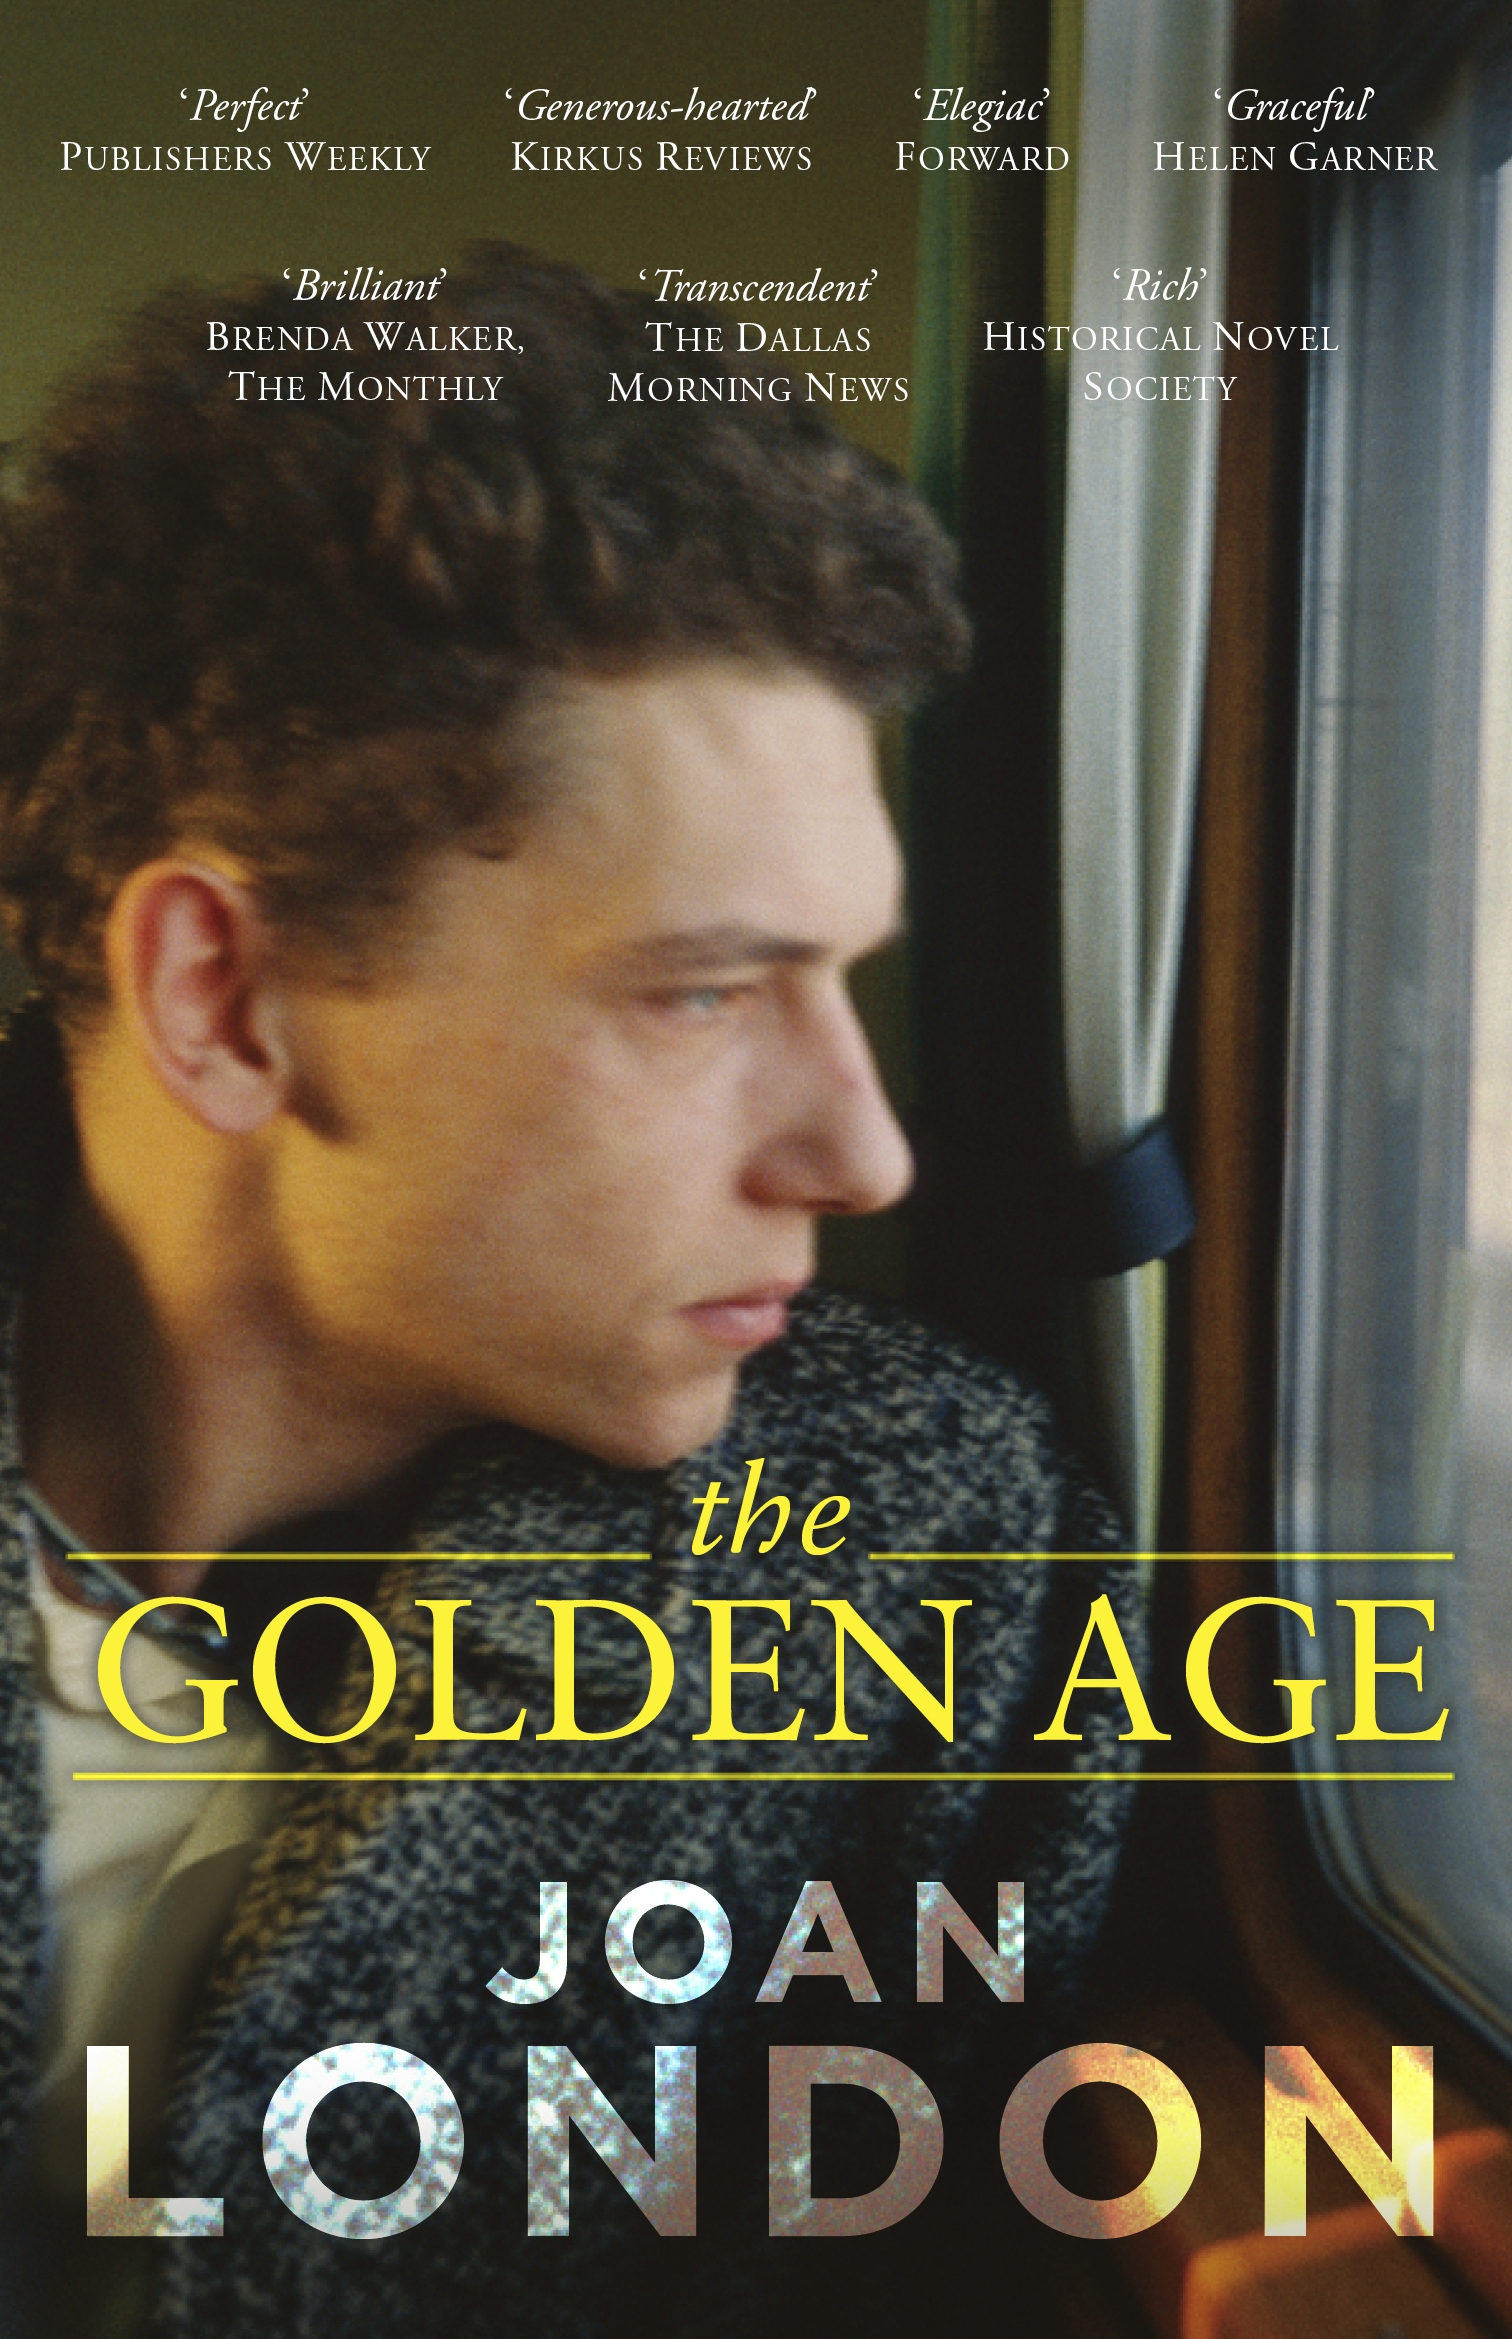 The Golden Age by Joan London - Penguin Books New Zealand